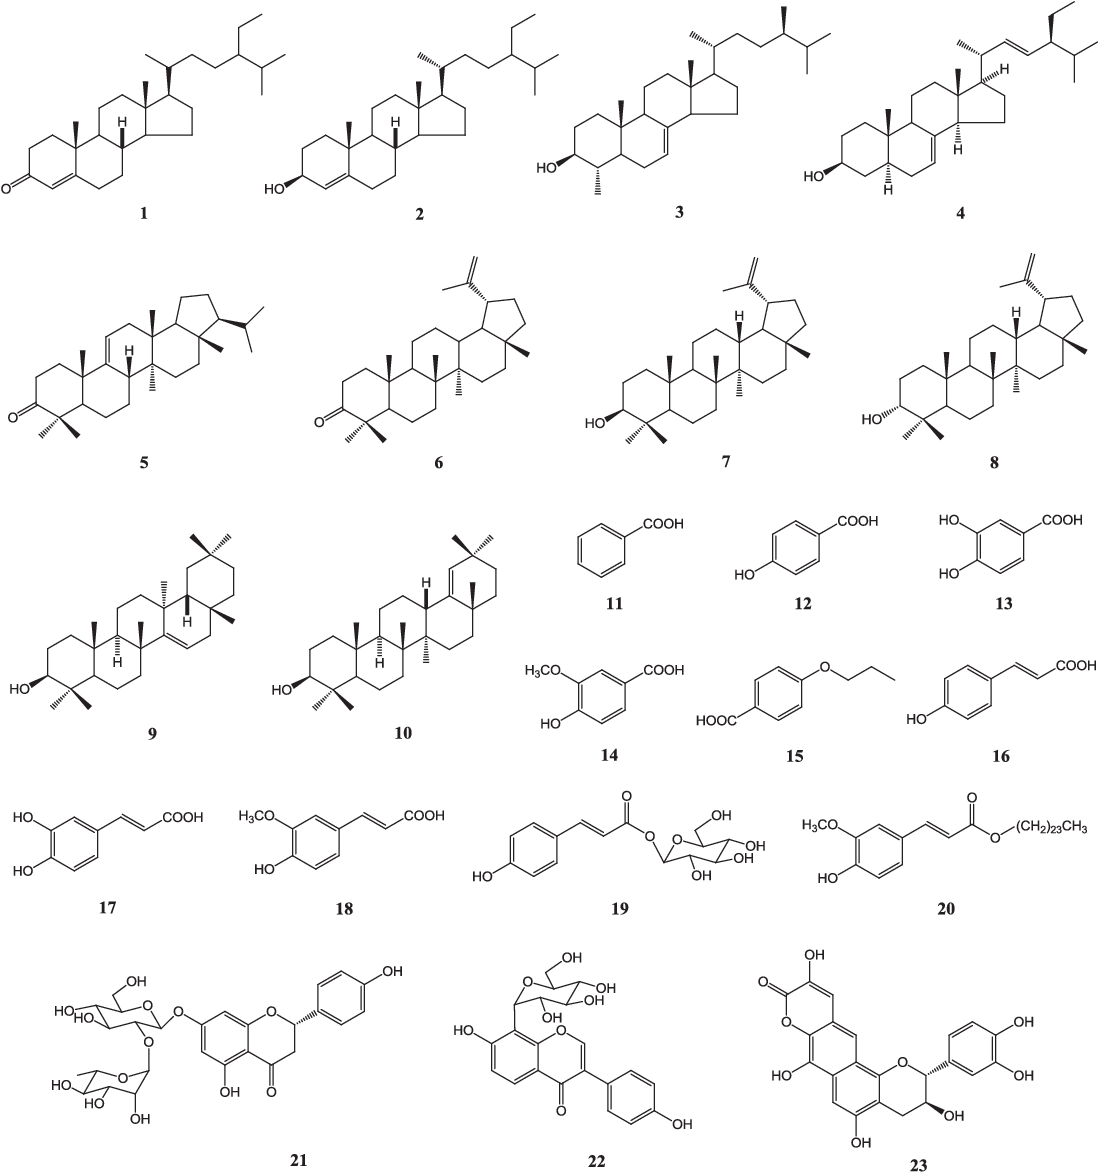 Figure 1. Chemical structures of compounds 1–23 isolated from the cor